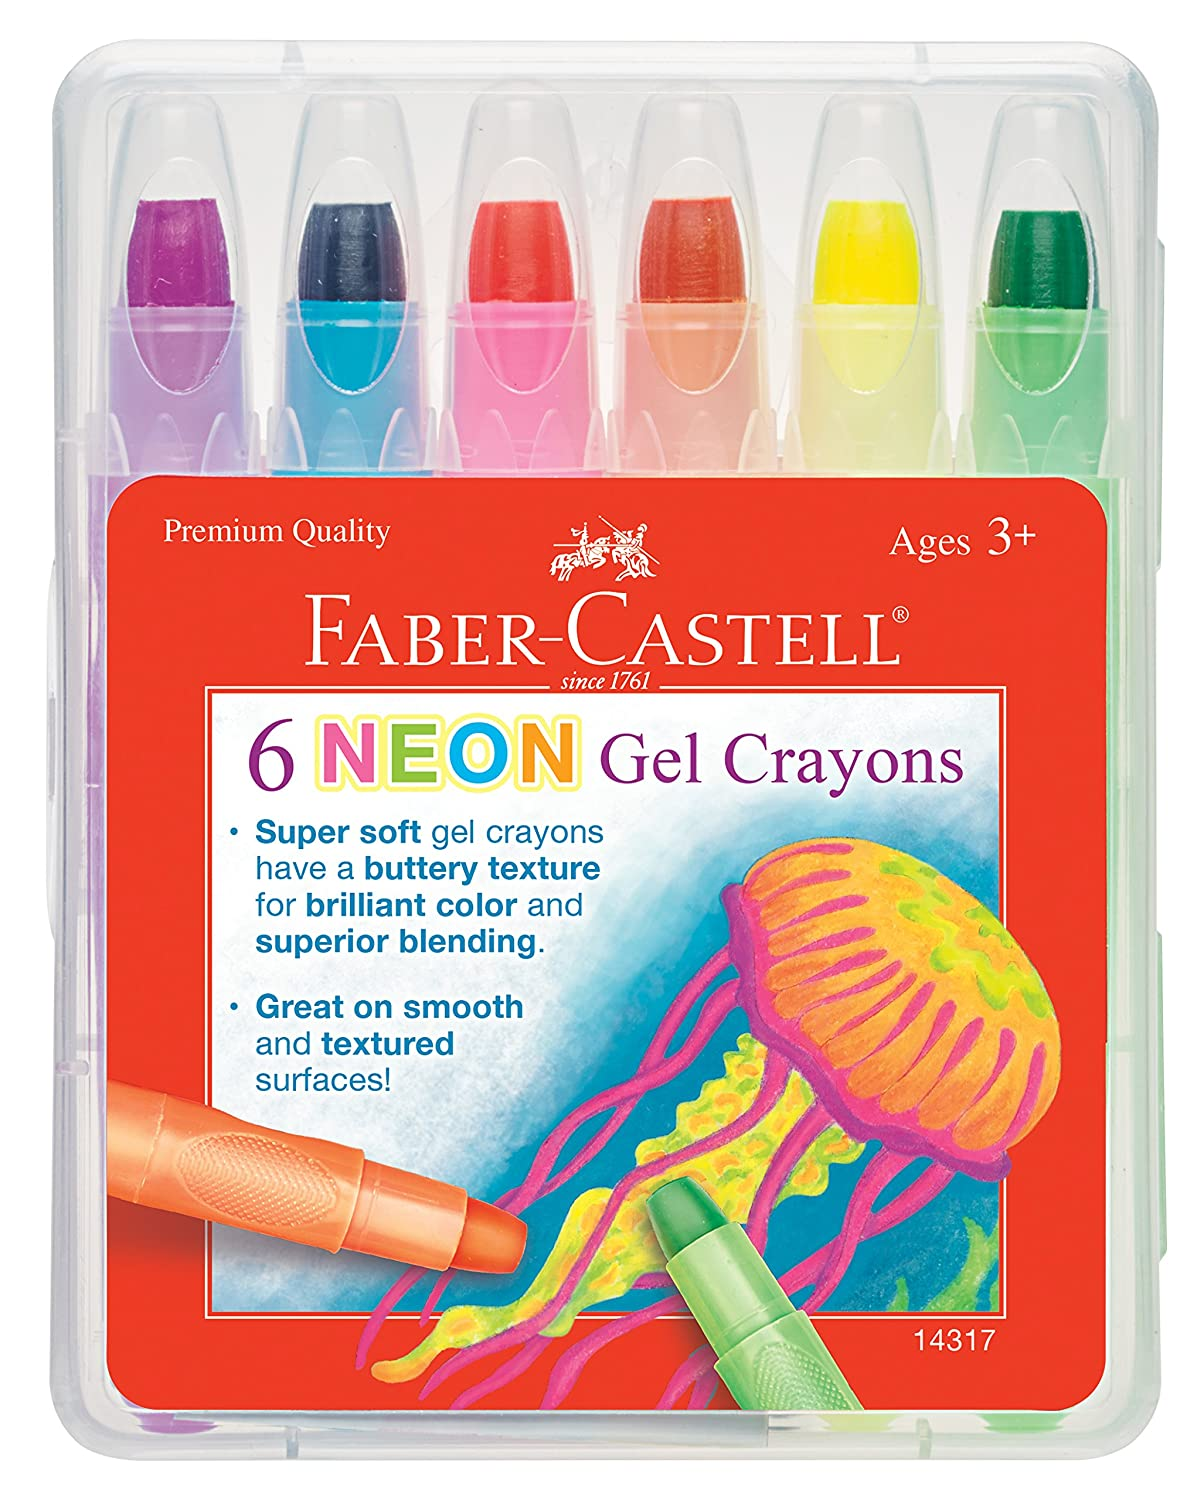 Faber Castell Gel Crayons - 12 Vibrant Colors In Durable Storage Case 14592